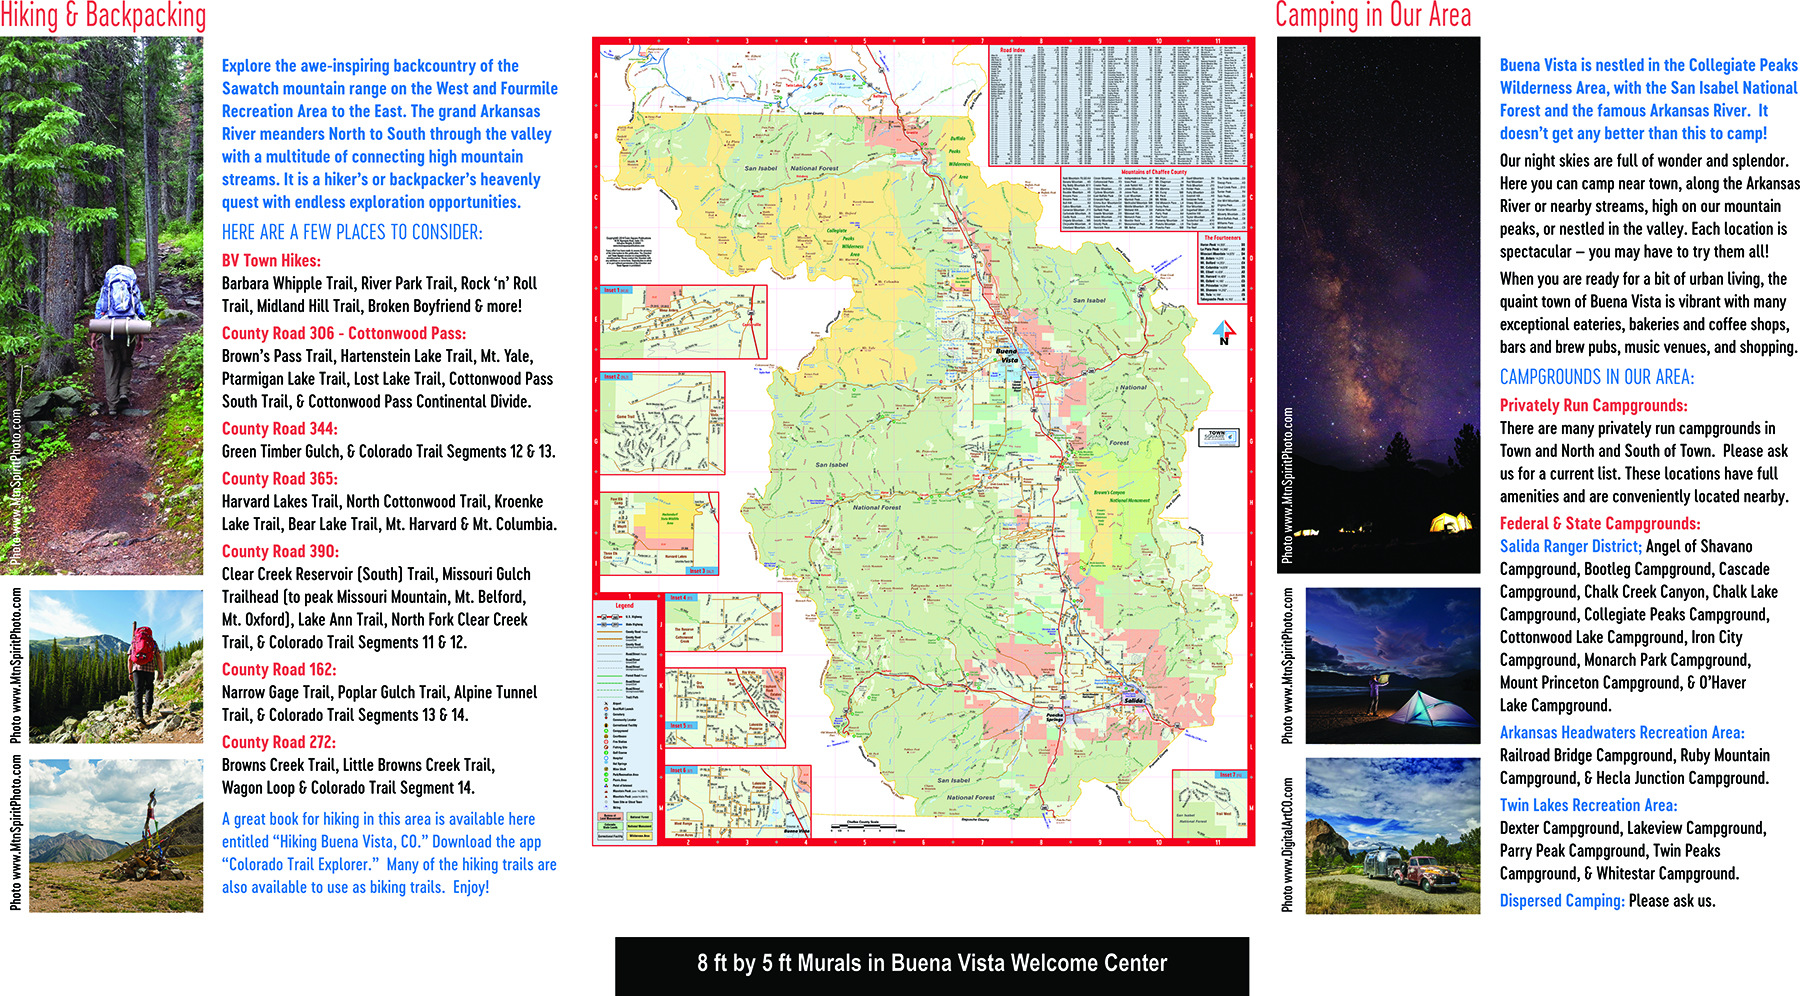 Map-Hiking-Camping-YaraInnovations (1).jpg